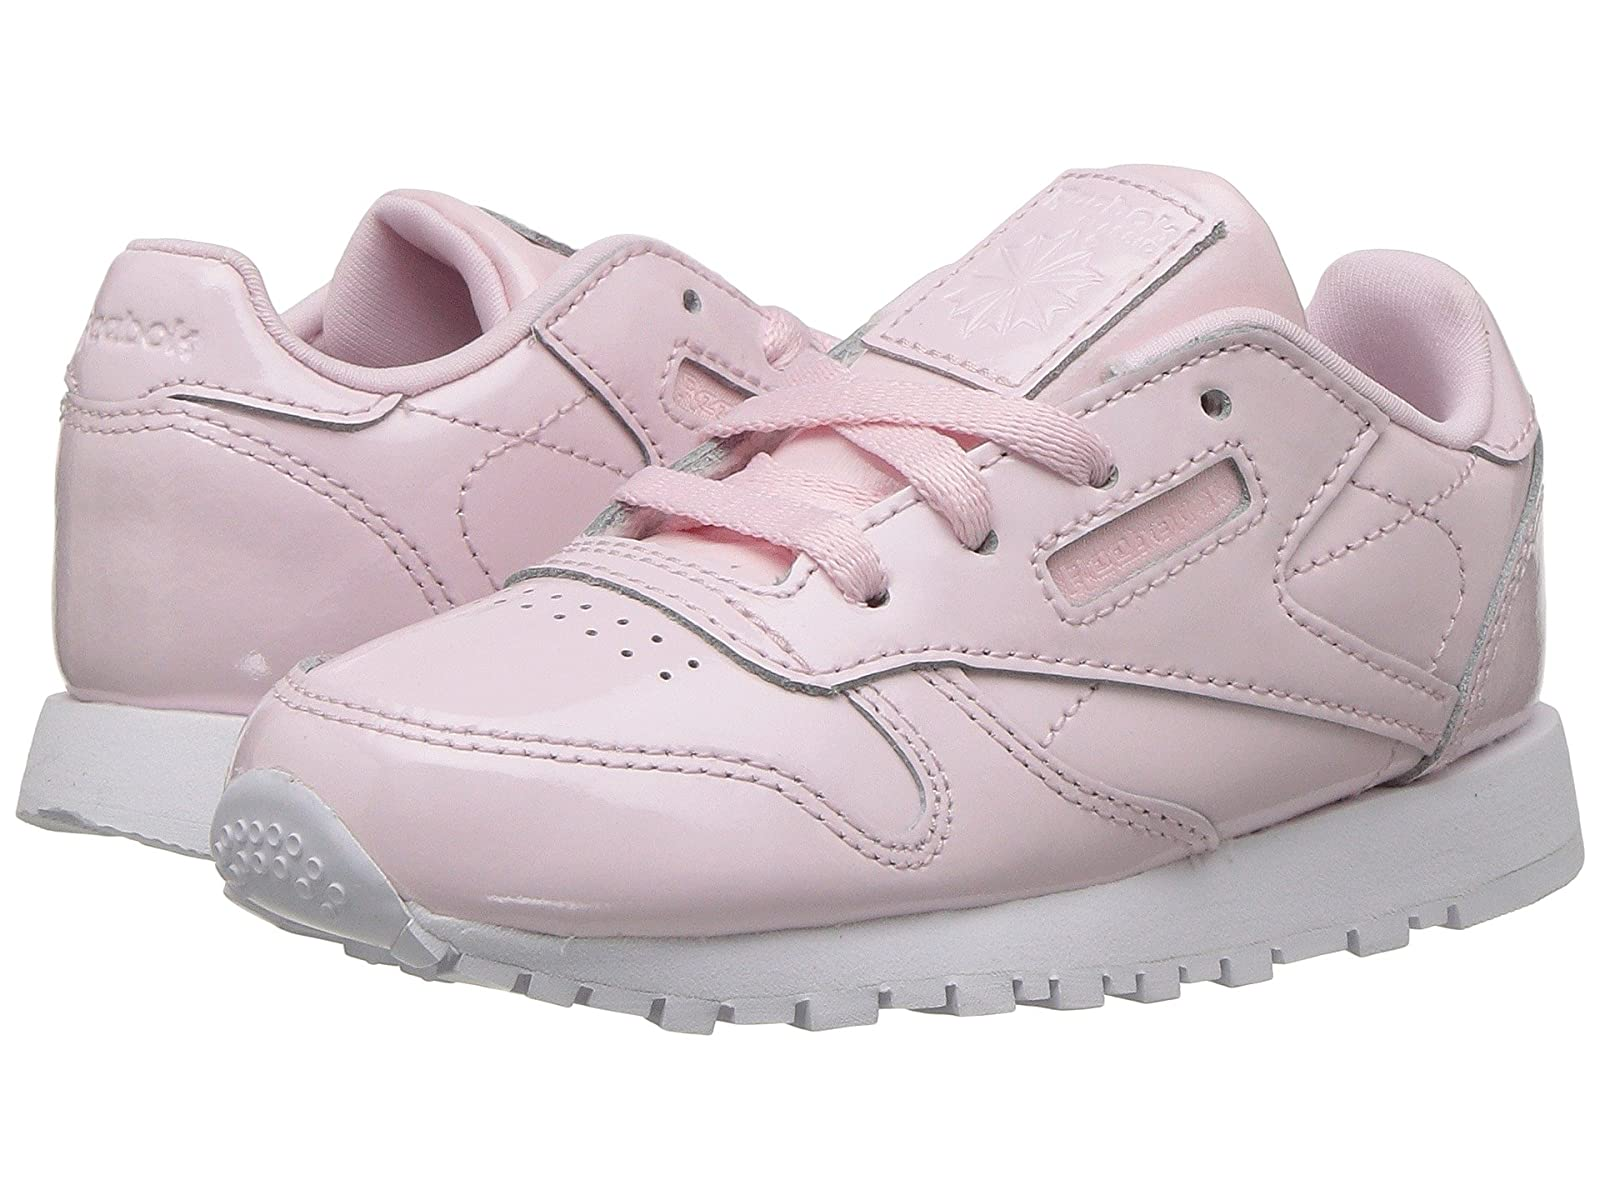 Reebok Kids Classic Leather (Infant/Toddler)Cheap and distinctive eye-catching shoes